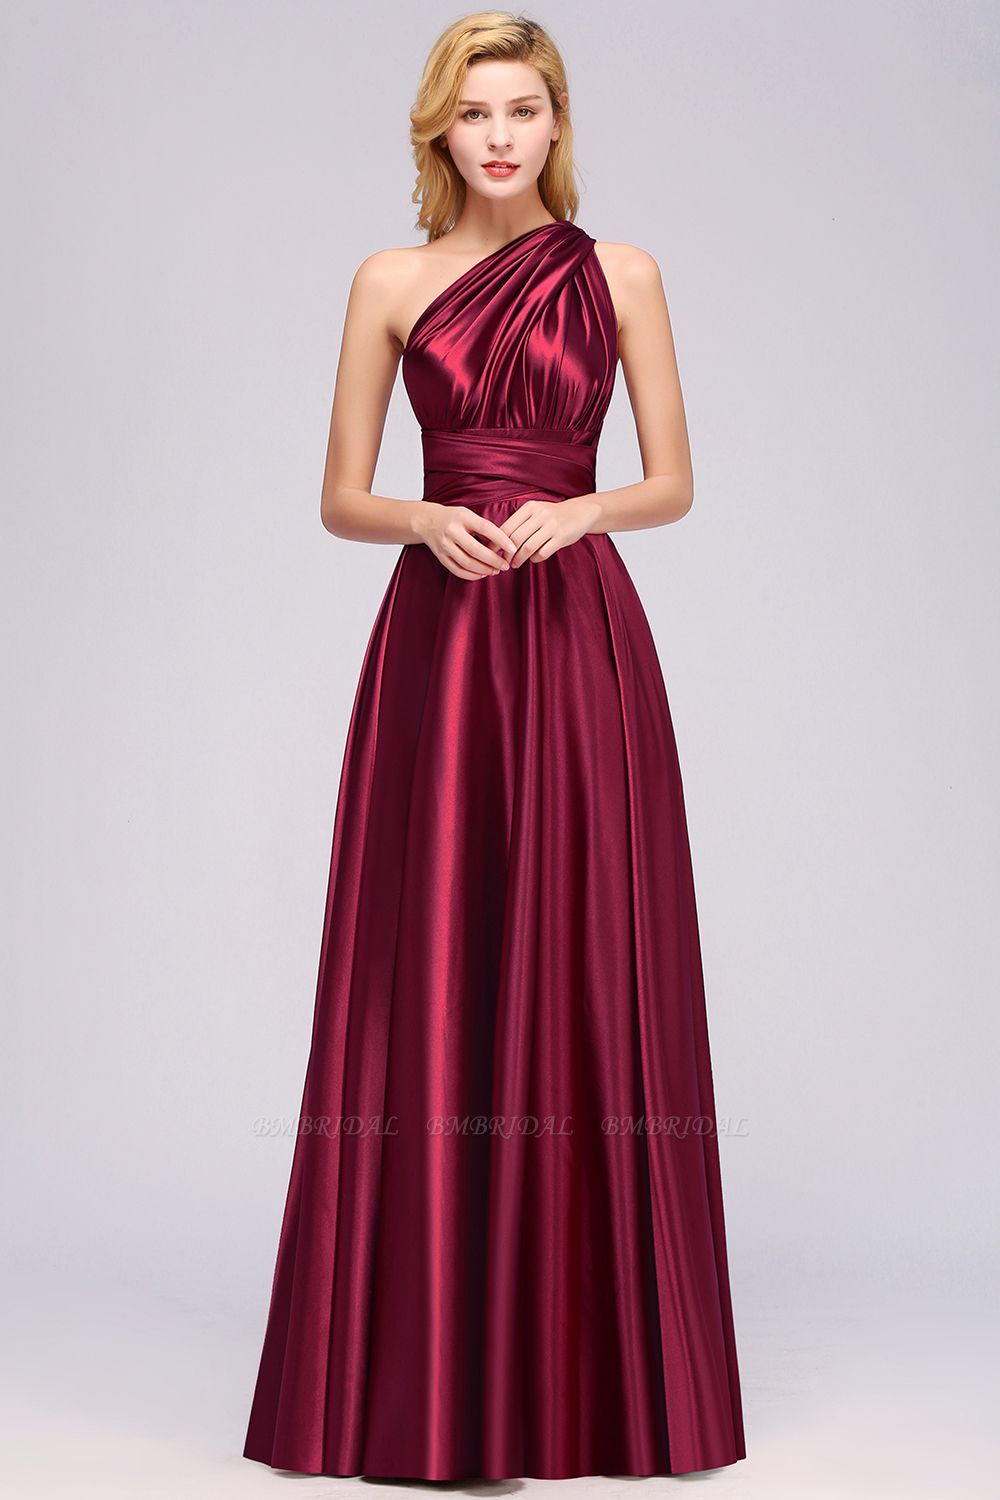 Chic Burgundy Chiffon Long Bridesmaid Dresses With One Shoulder